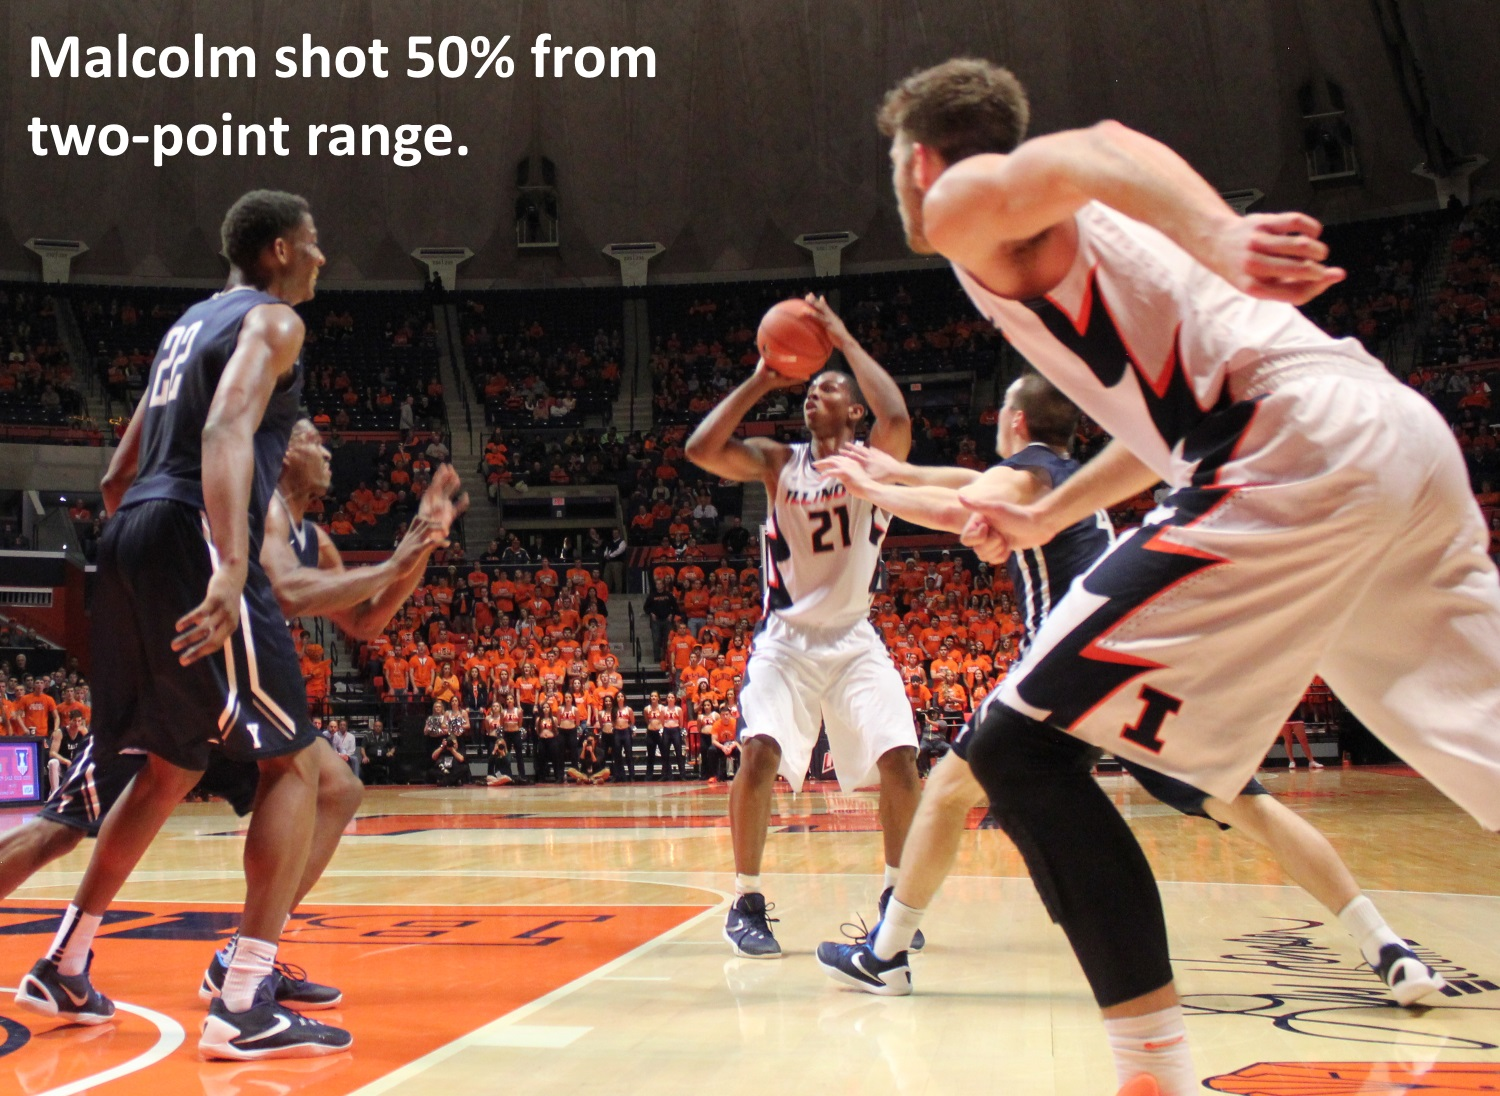 Malcolm shot 50-percent from two-point range